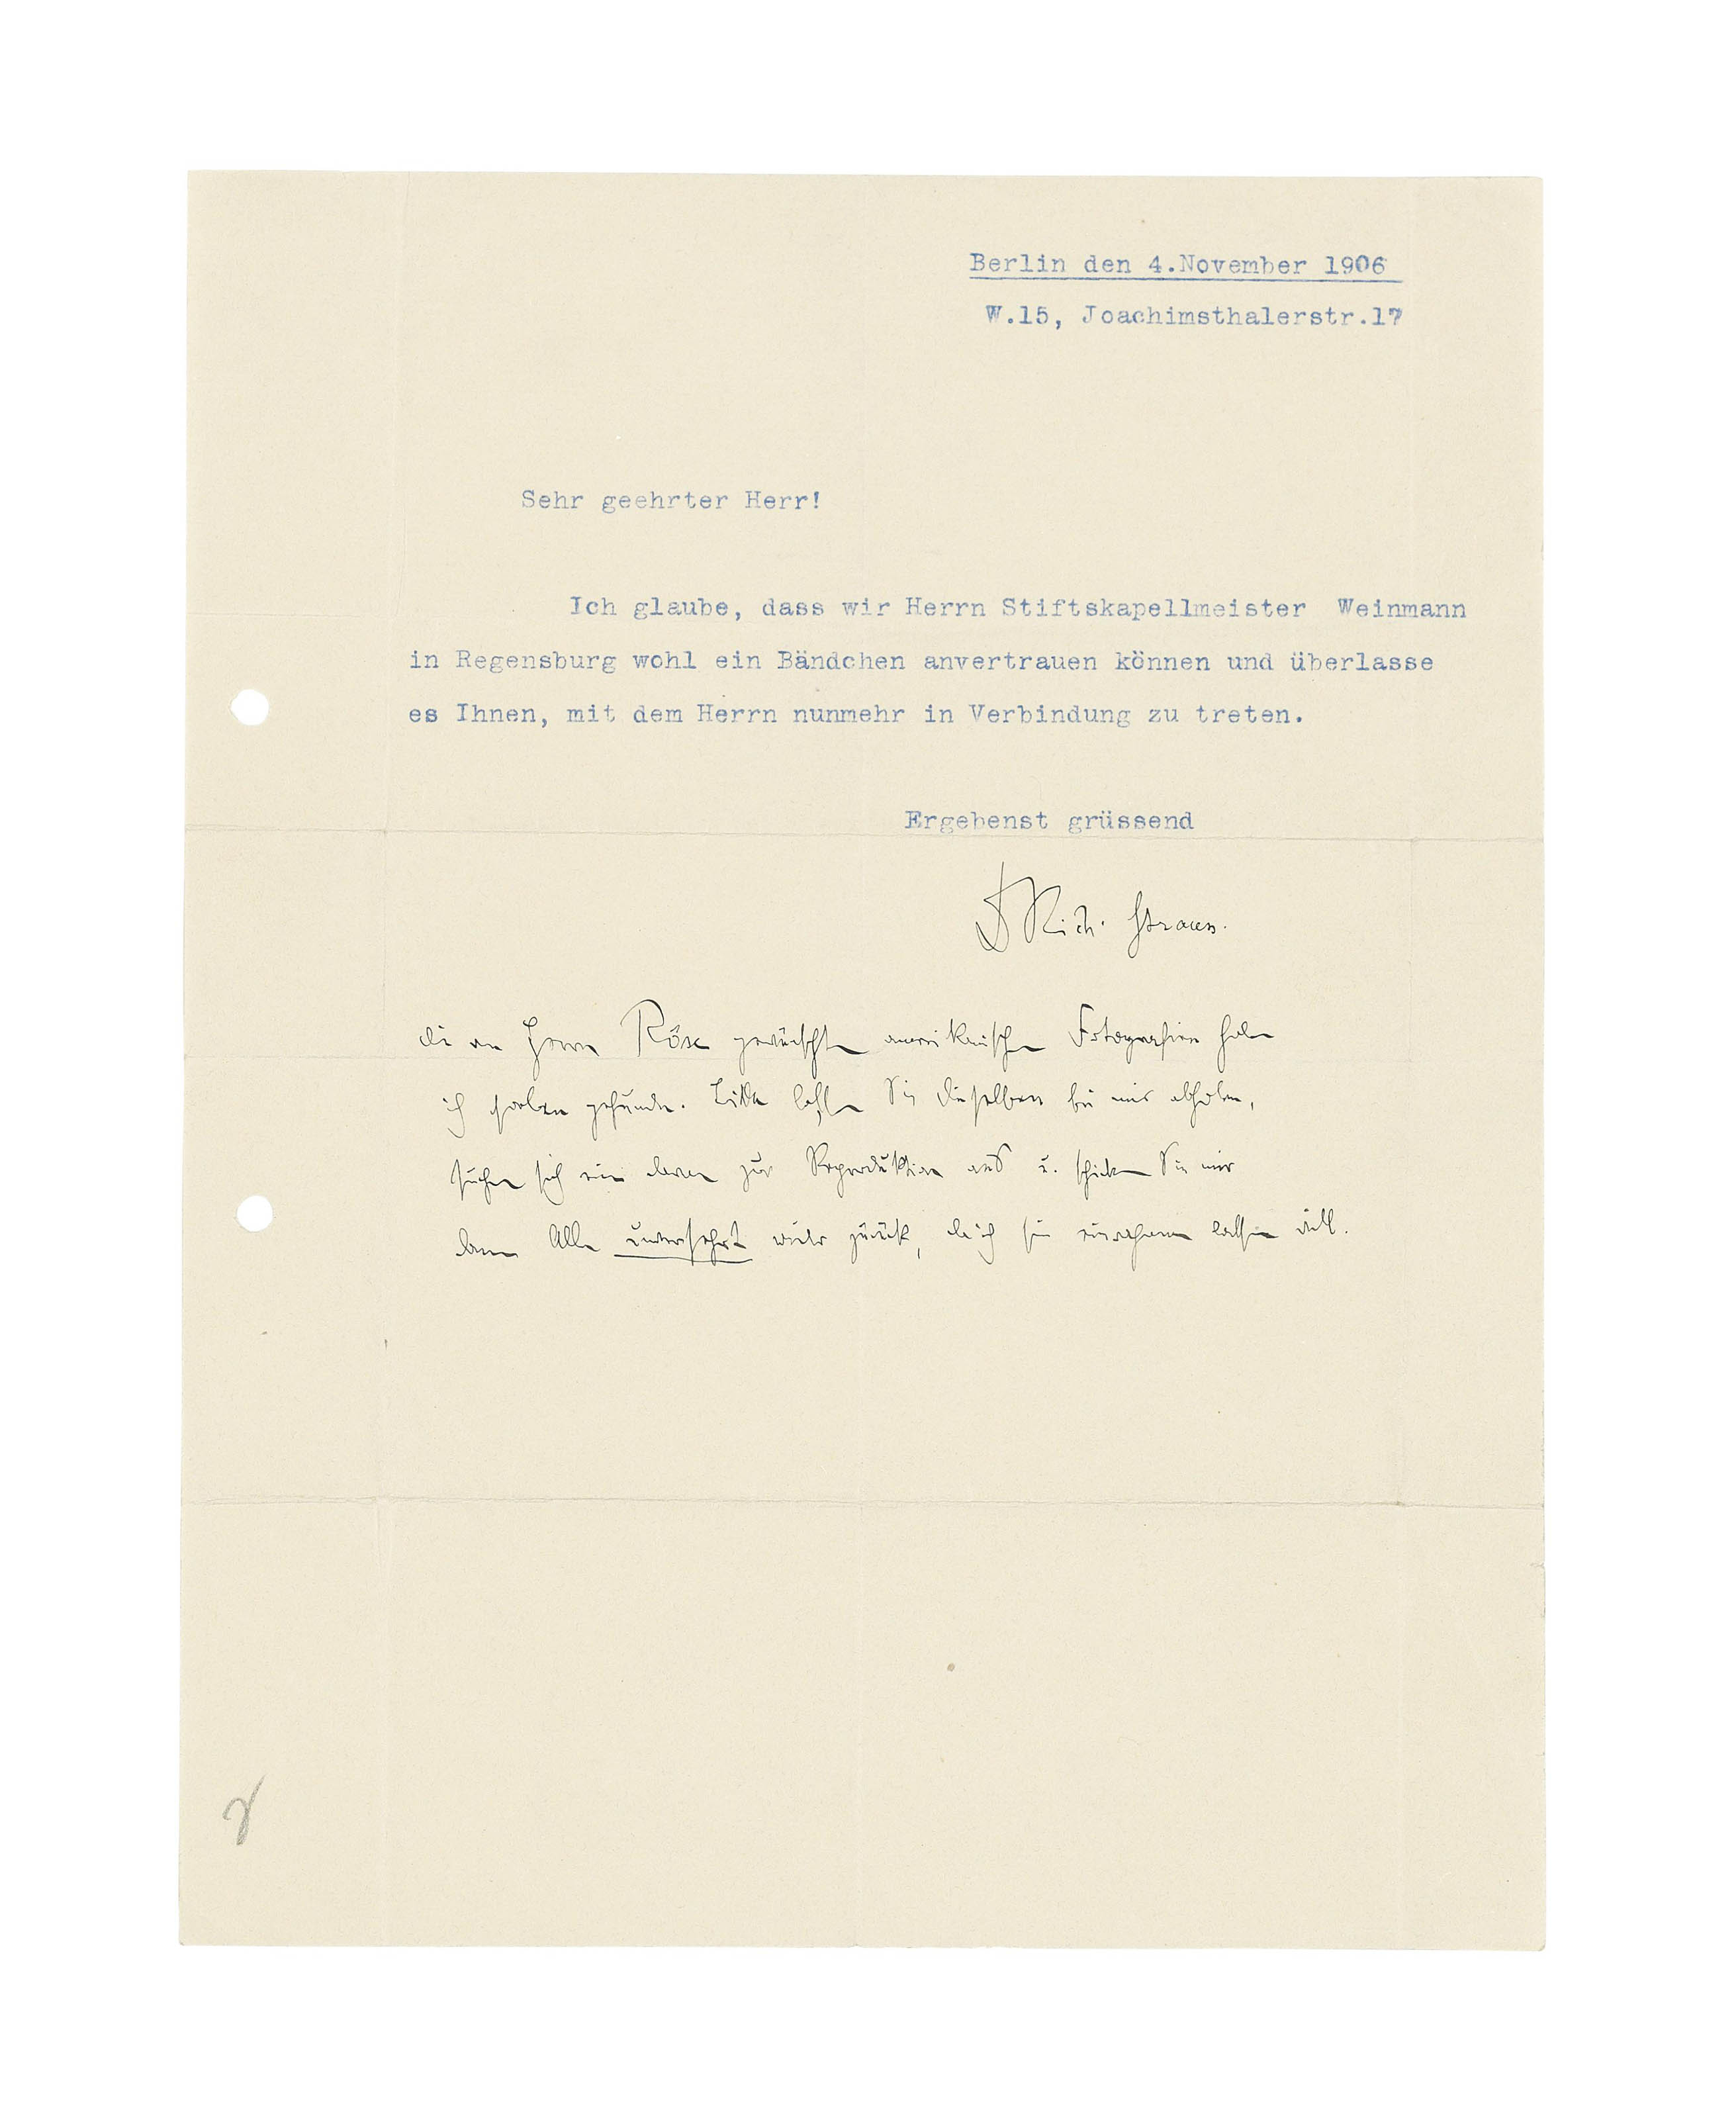 STRAUSS, Richard (1864-1949). Two autograph letters signed, the first to an unidentified female pianist, Munich, 12 May [1888], discussing his difficulty in completing a cadenza, and his current compositions, including the first draft of an opera text (presumably for Guntram), as well as 'a dozen lieder and I am now working on a symphonic poem Don Juan (after Lenau). You laugh!', 3 pages, 8vo, bifolium; the second to G.F. Kogel, Berlin, [10 May 1898], on the programme for the first performance of his Heldenleben (on 3 March 1899), insisting on its inseparability from Don Quixote, 'Don Quixote u. Heldenleben sind nämlich so sehr als directe Pendants gedacht, daß besonders Don Qu. erst neben Heldenleben voll u. ganz verständlich ist', 3 pages, 8vo, envelope; with a typed letter signed with autograph postscript, 4 November 1906; and a score sheet (for a game of 'skat') signed by Strauss, with a related postcard. Provenance: the letter of 10 November 1898 acquired at Stargardt, 1955, catalogue 519, lot 280; the remainder from the collection of Dr Fritz and Dita Callomon, and by gift. (4)